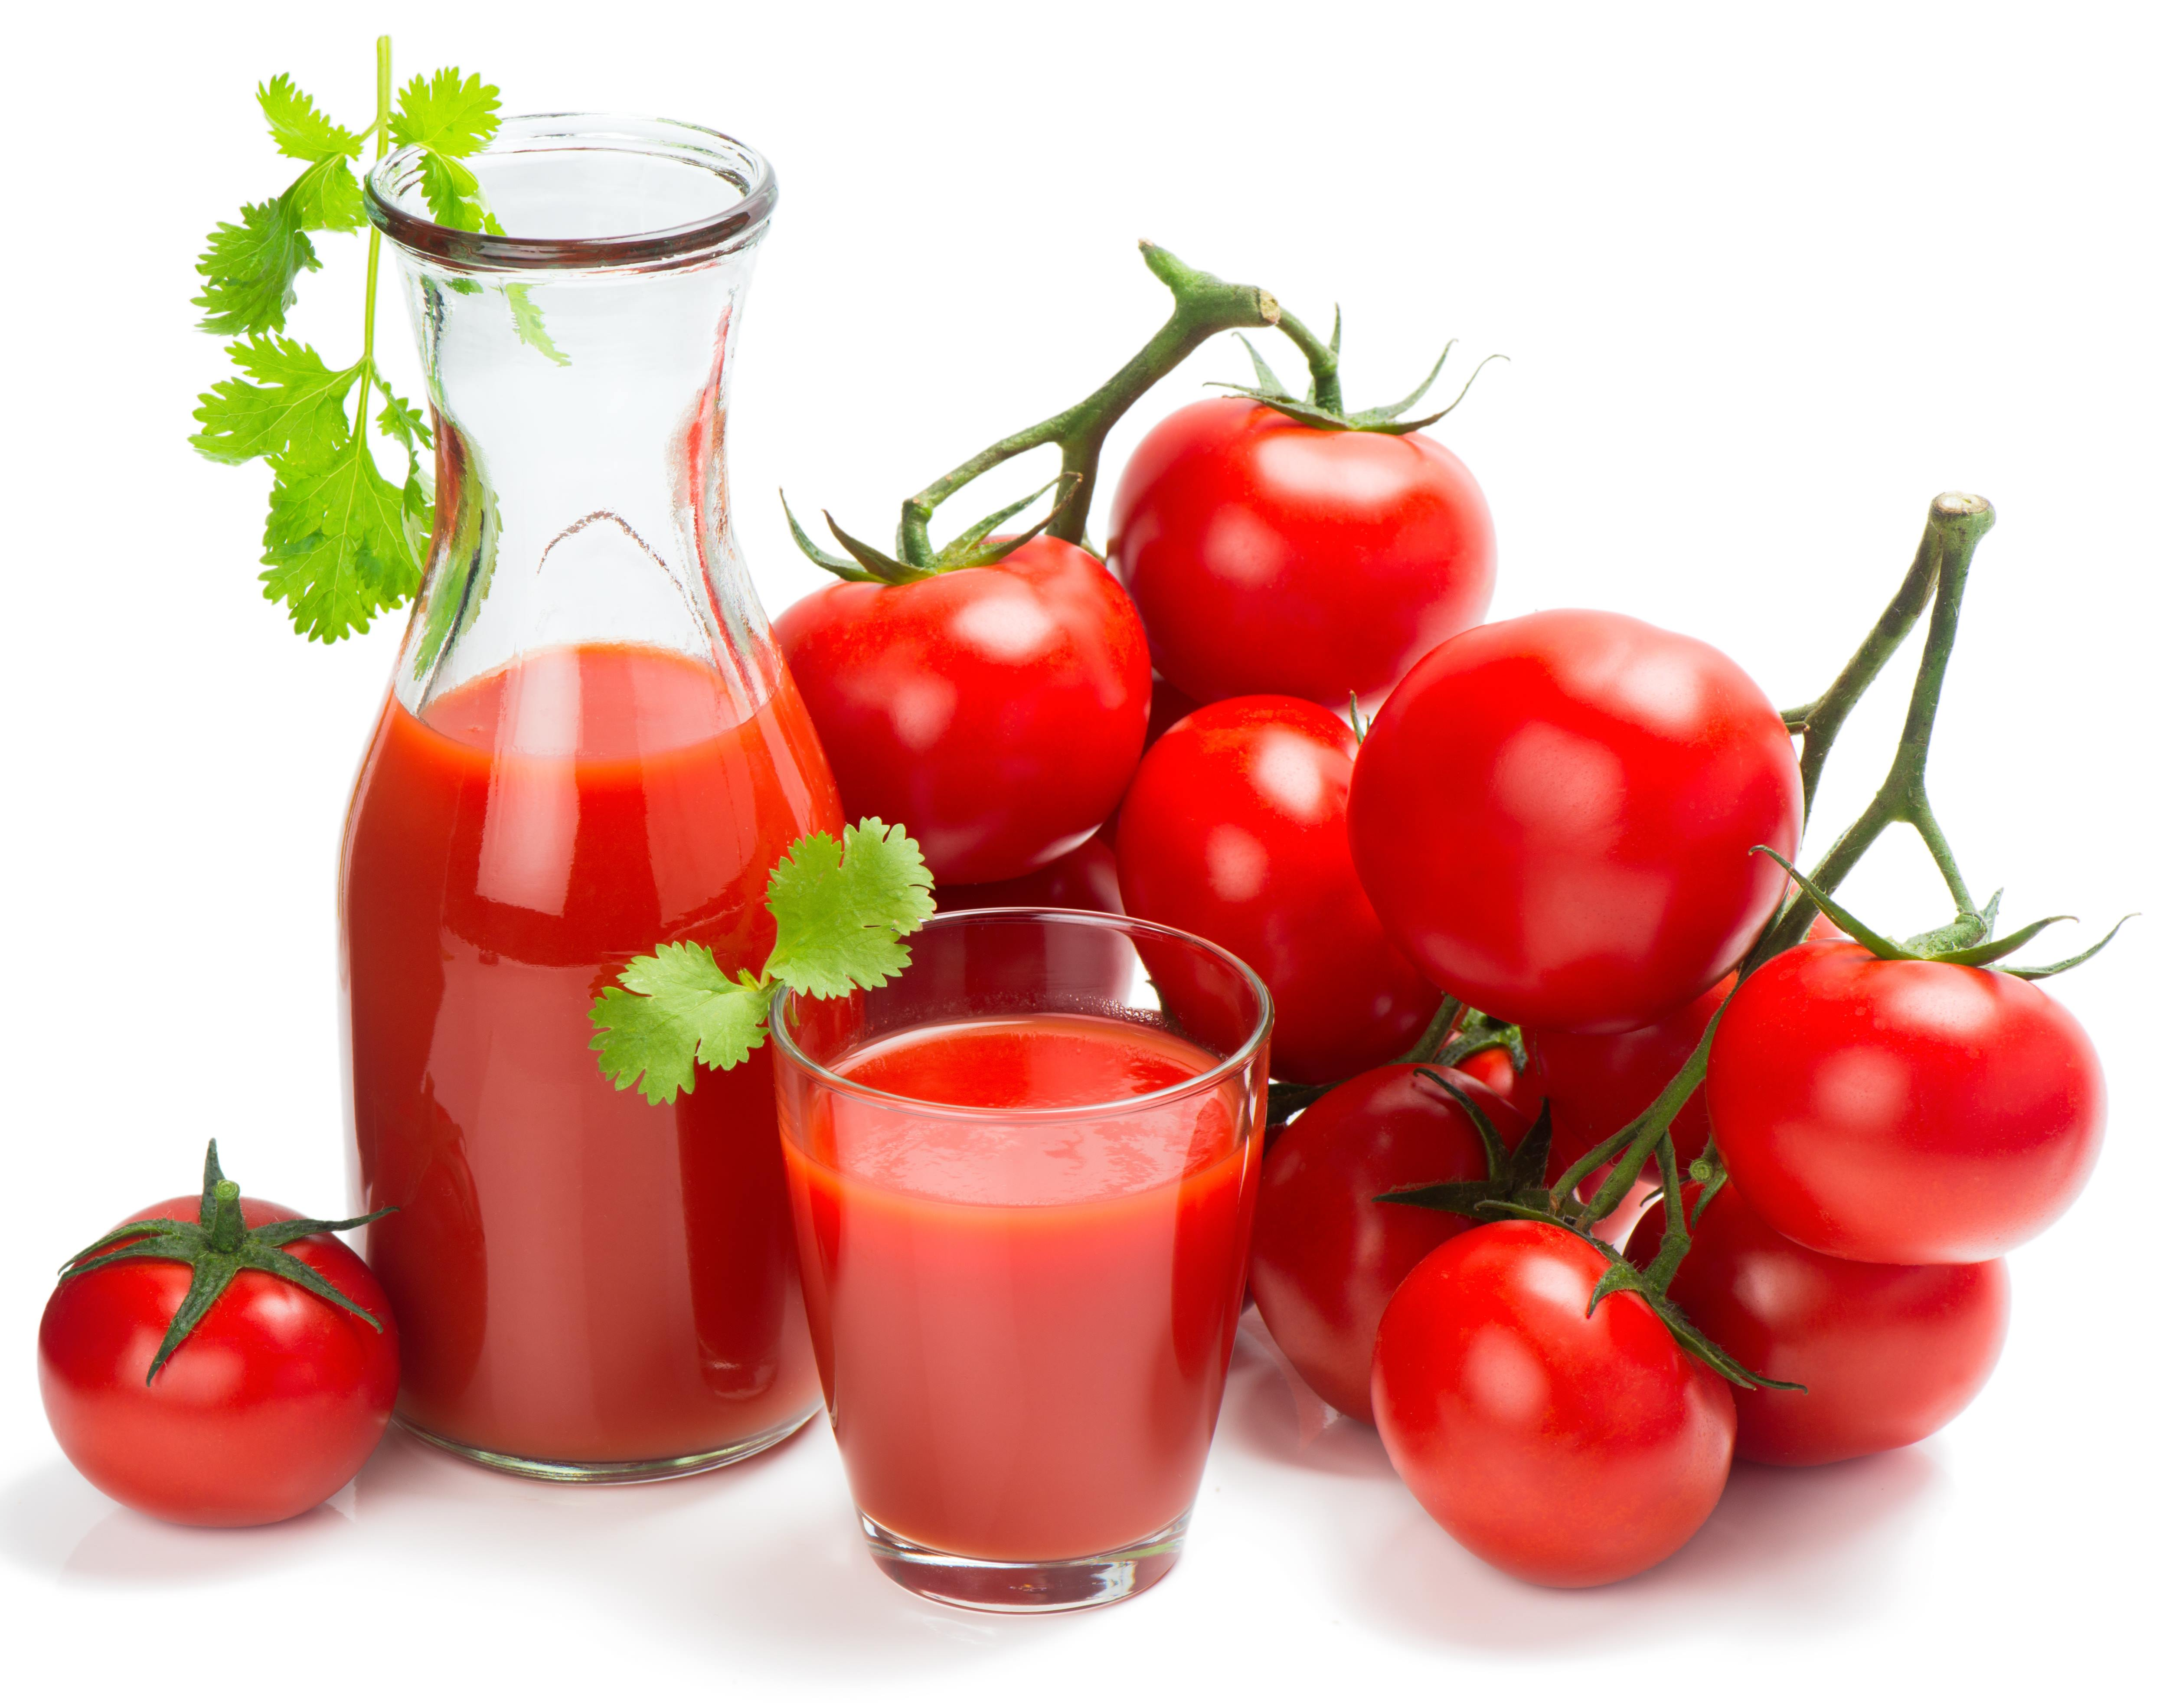 are tomatoes a fruit juicy fruit song